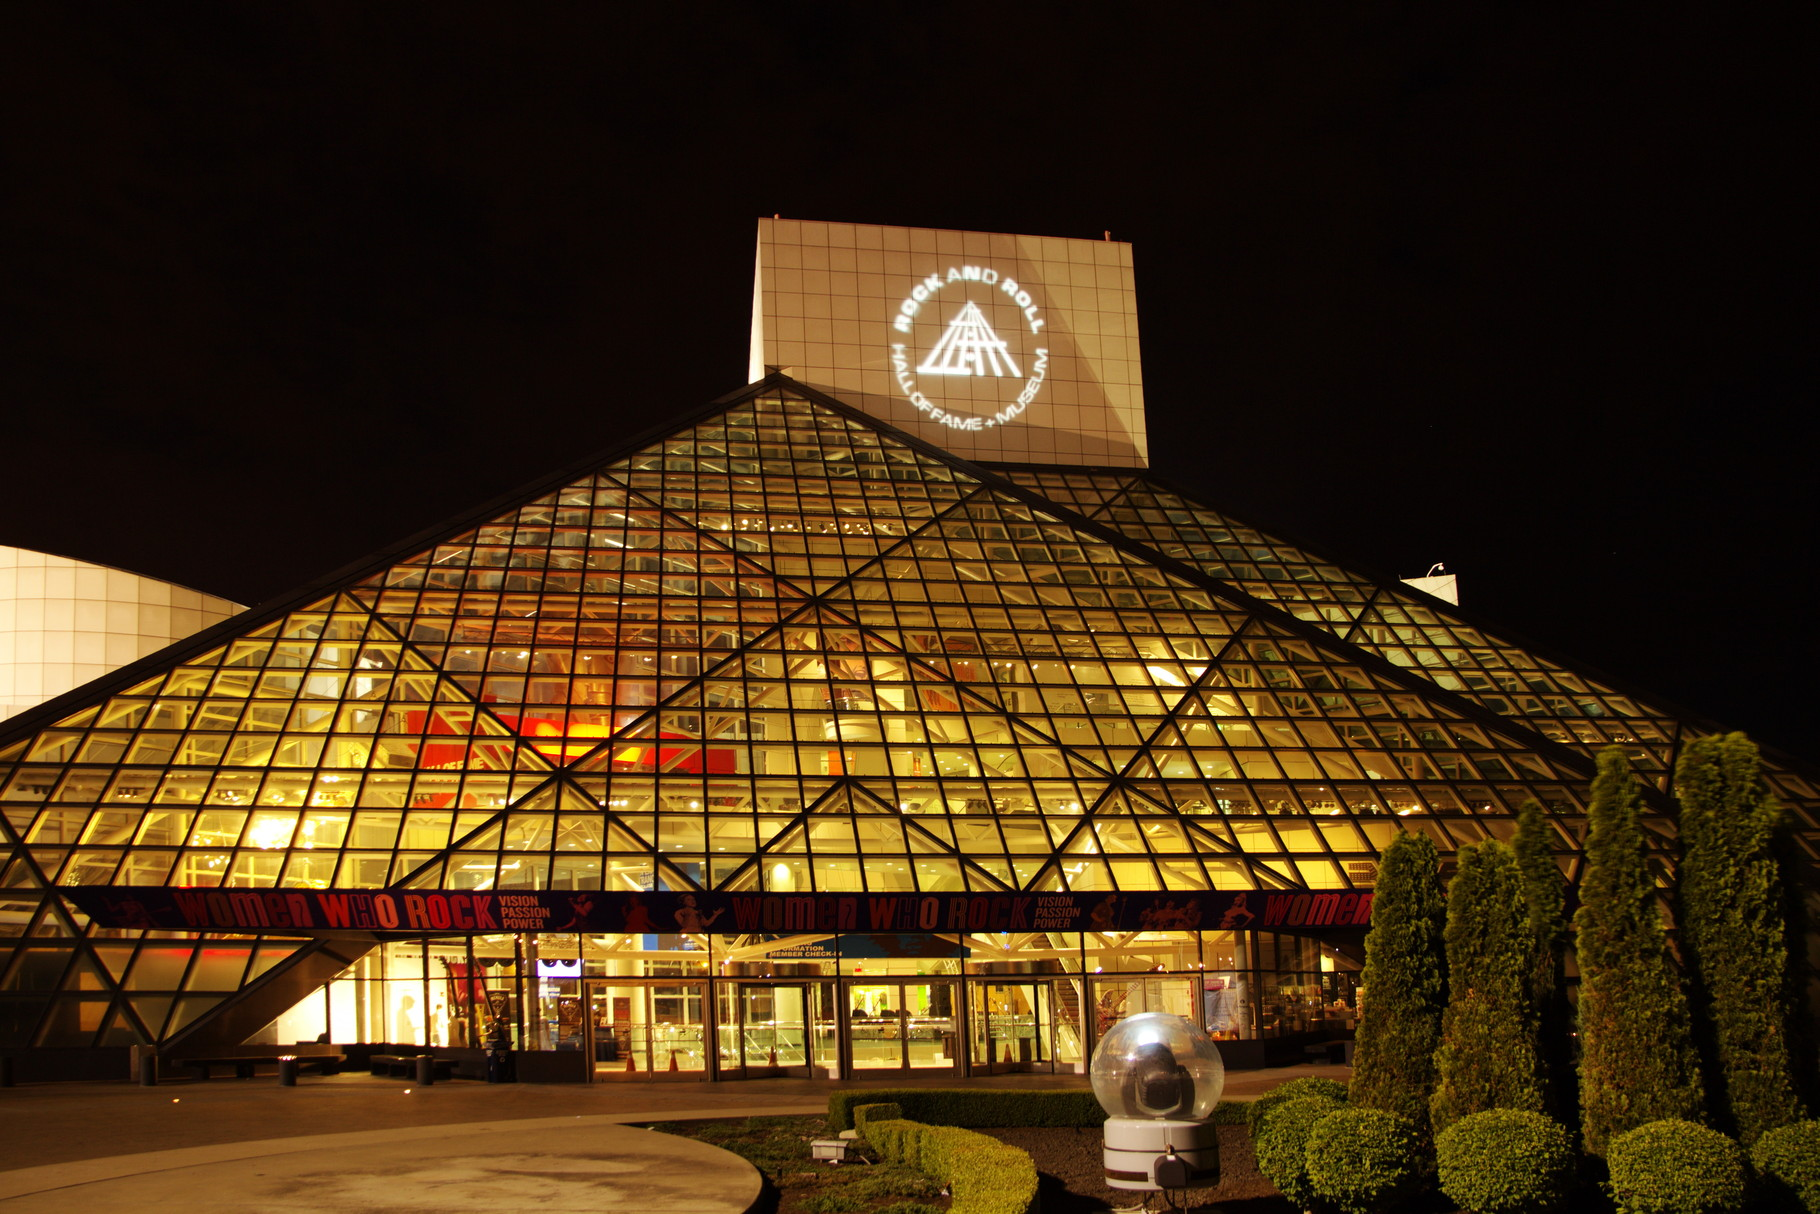 Rock'n'Roll Hall of Fame in Cleveland, USA